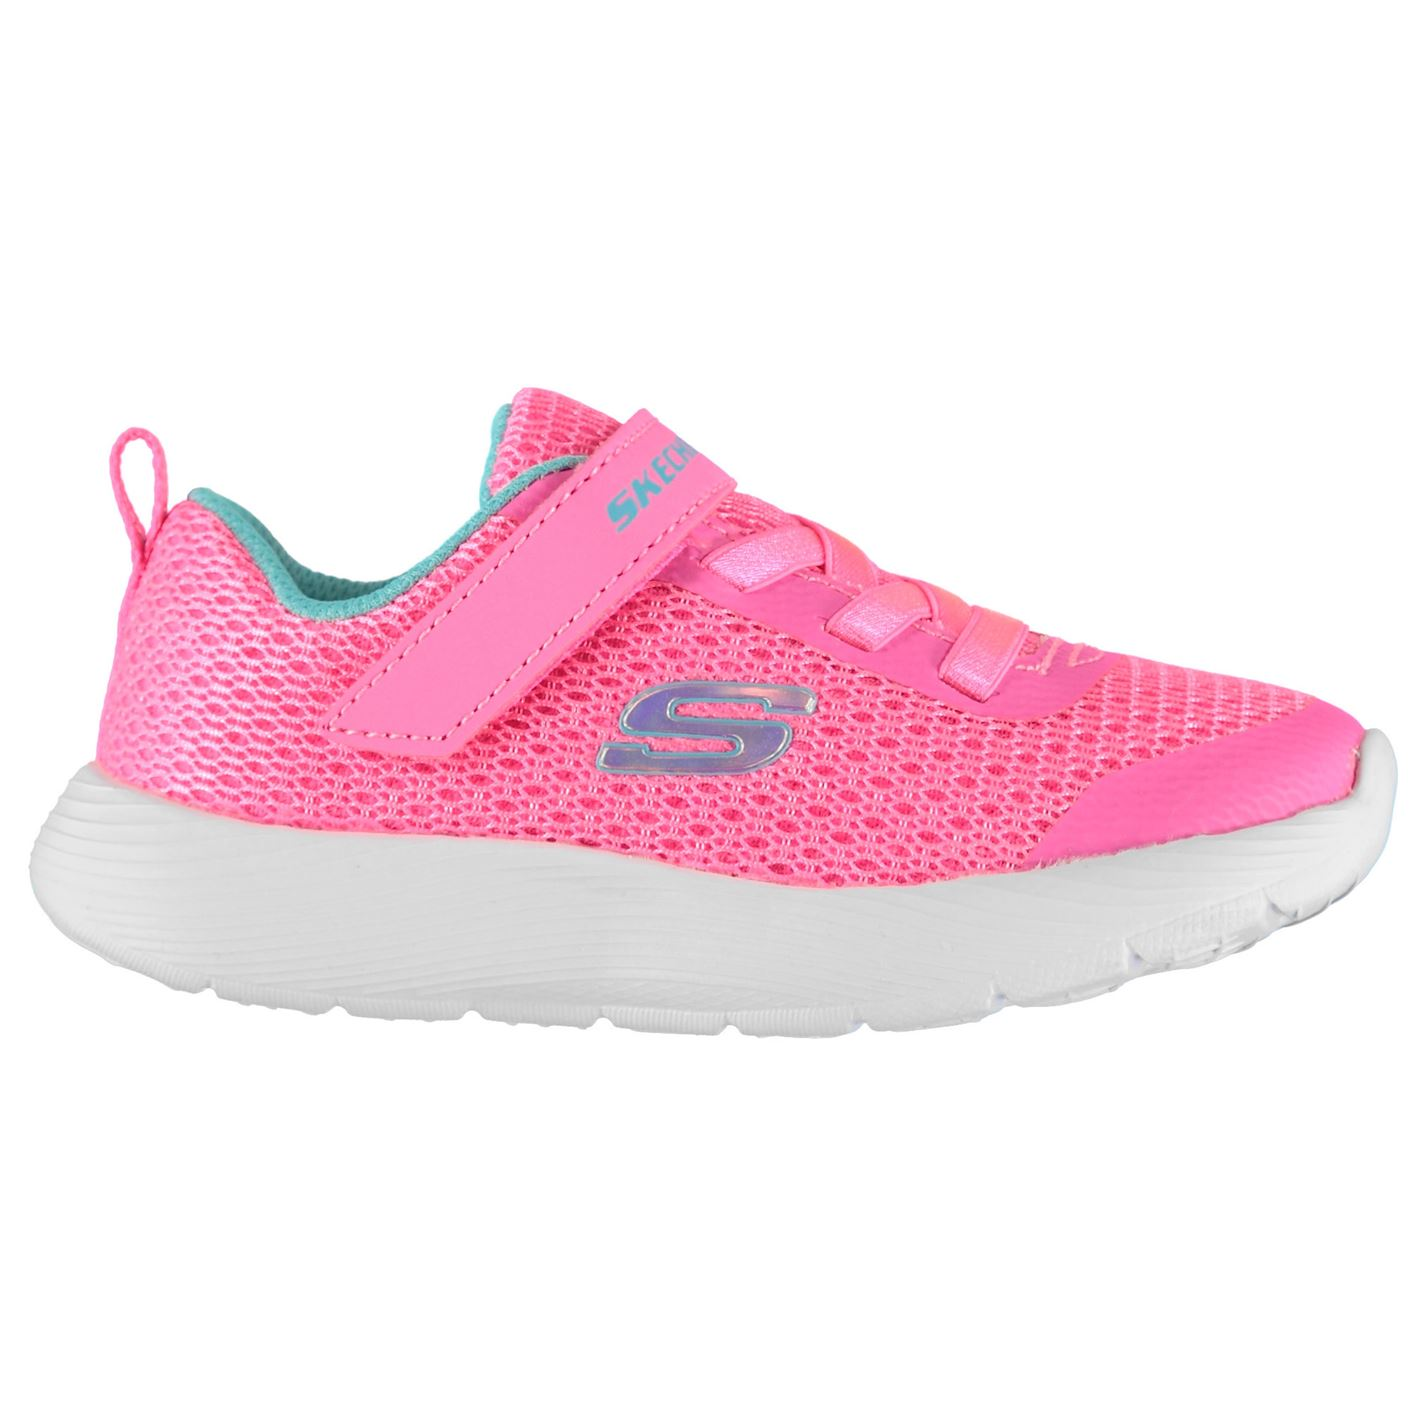 Skechers Dyna Lite Infant Girls Trainers Pink/Blue